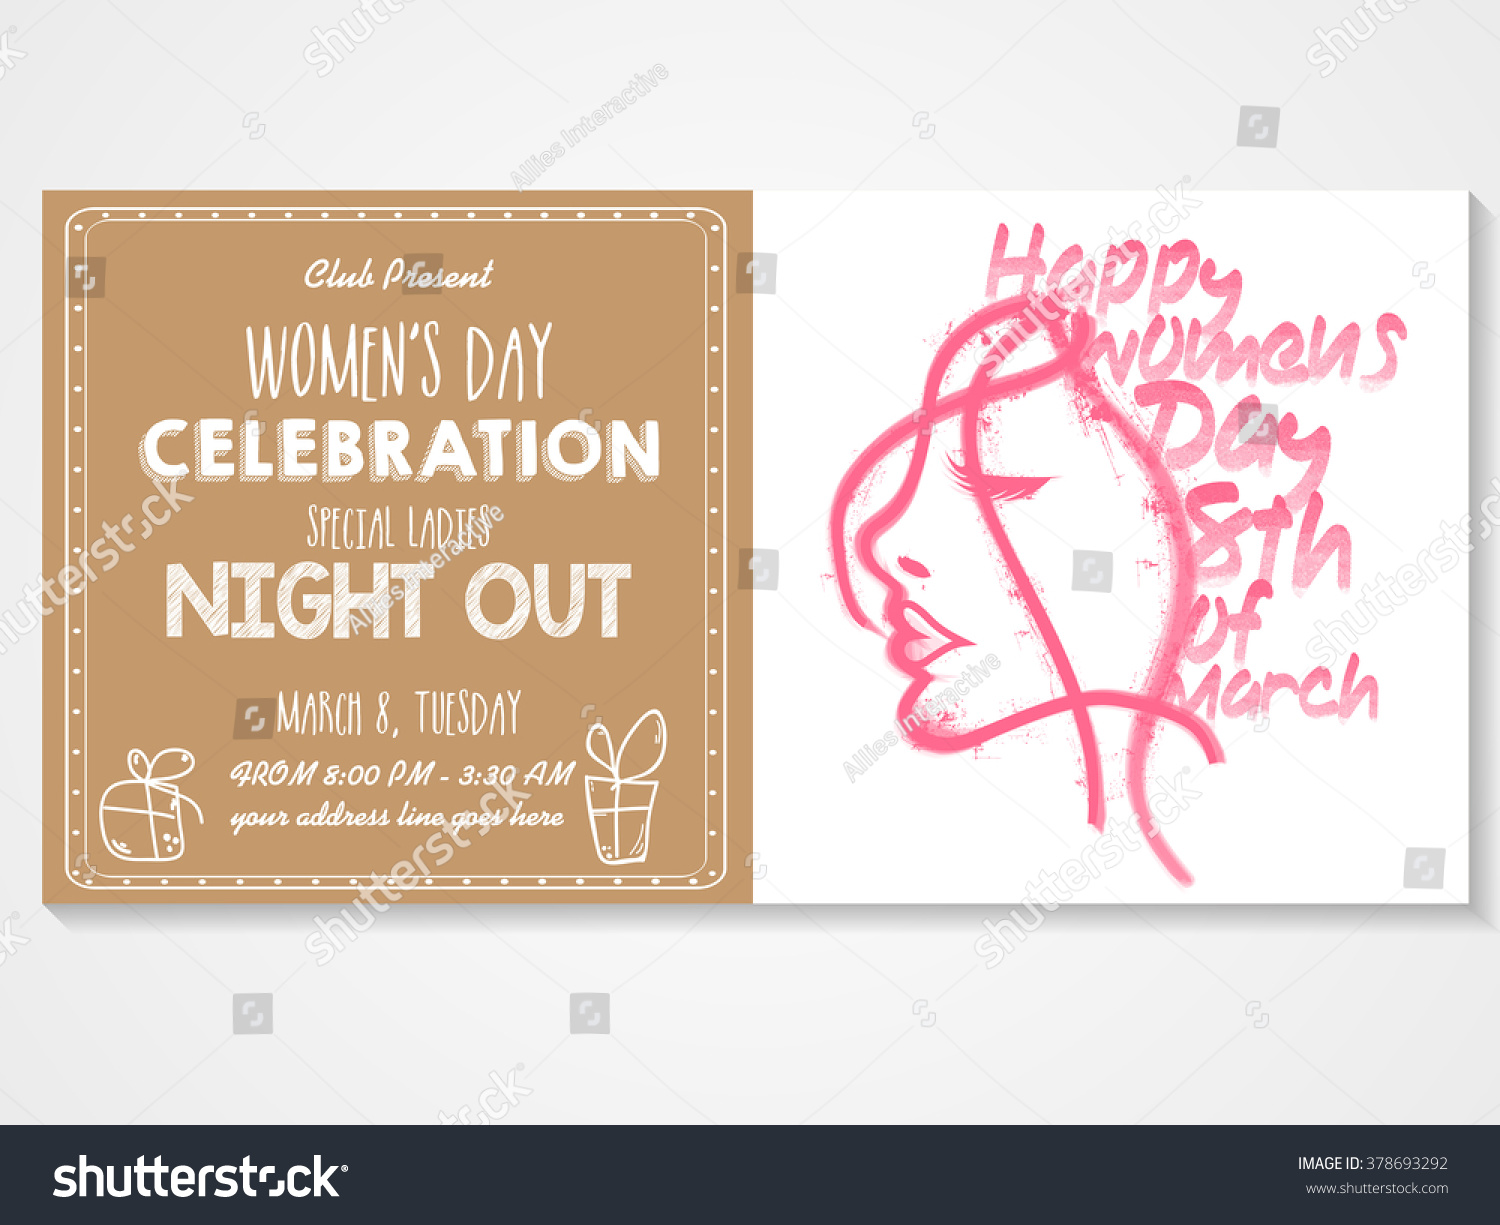 Creative Invitation Card Design Illustration Young Stock Vector 378693292